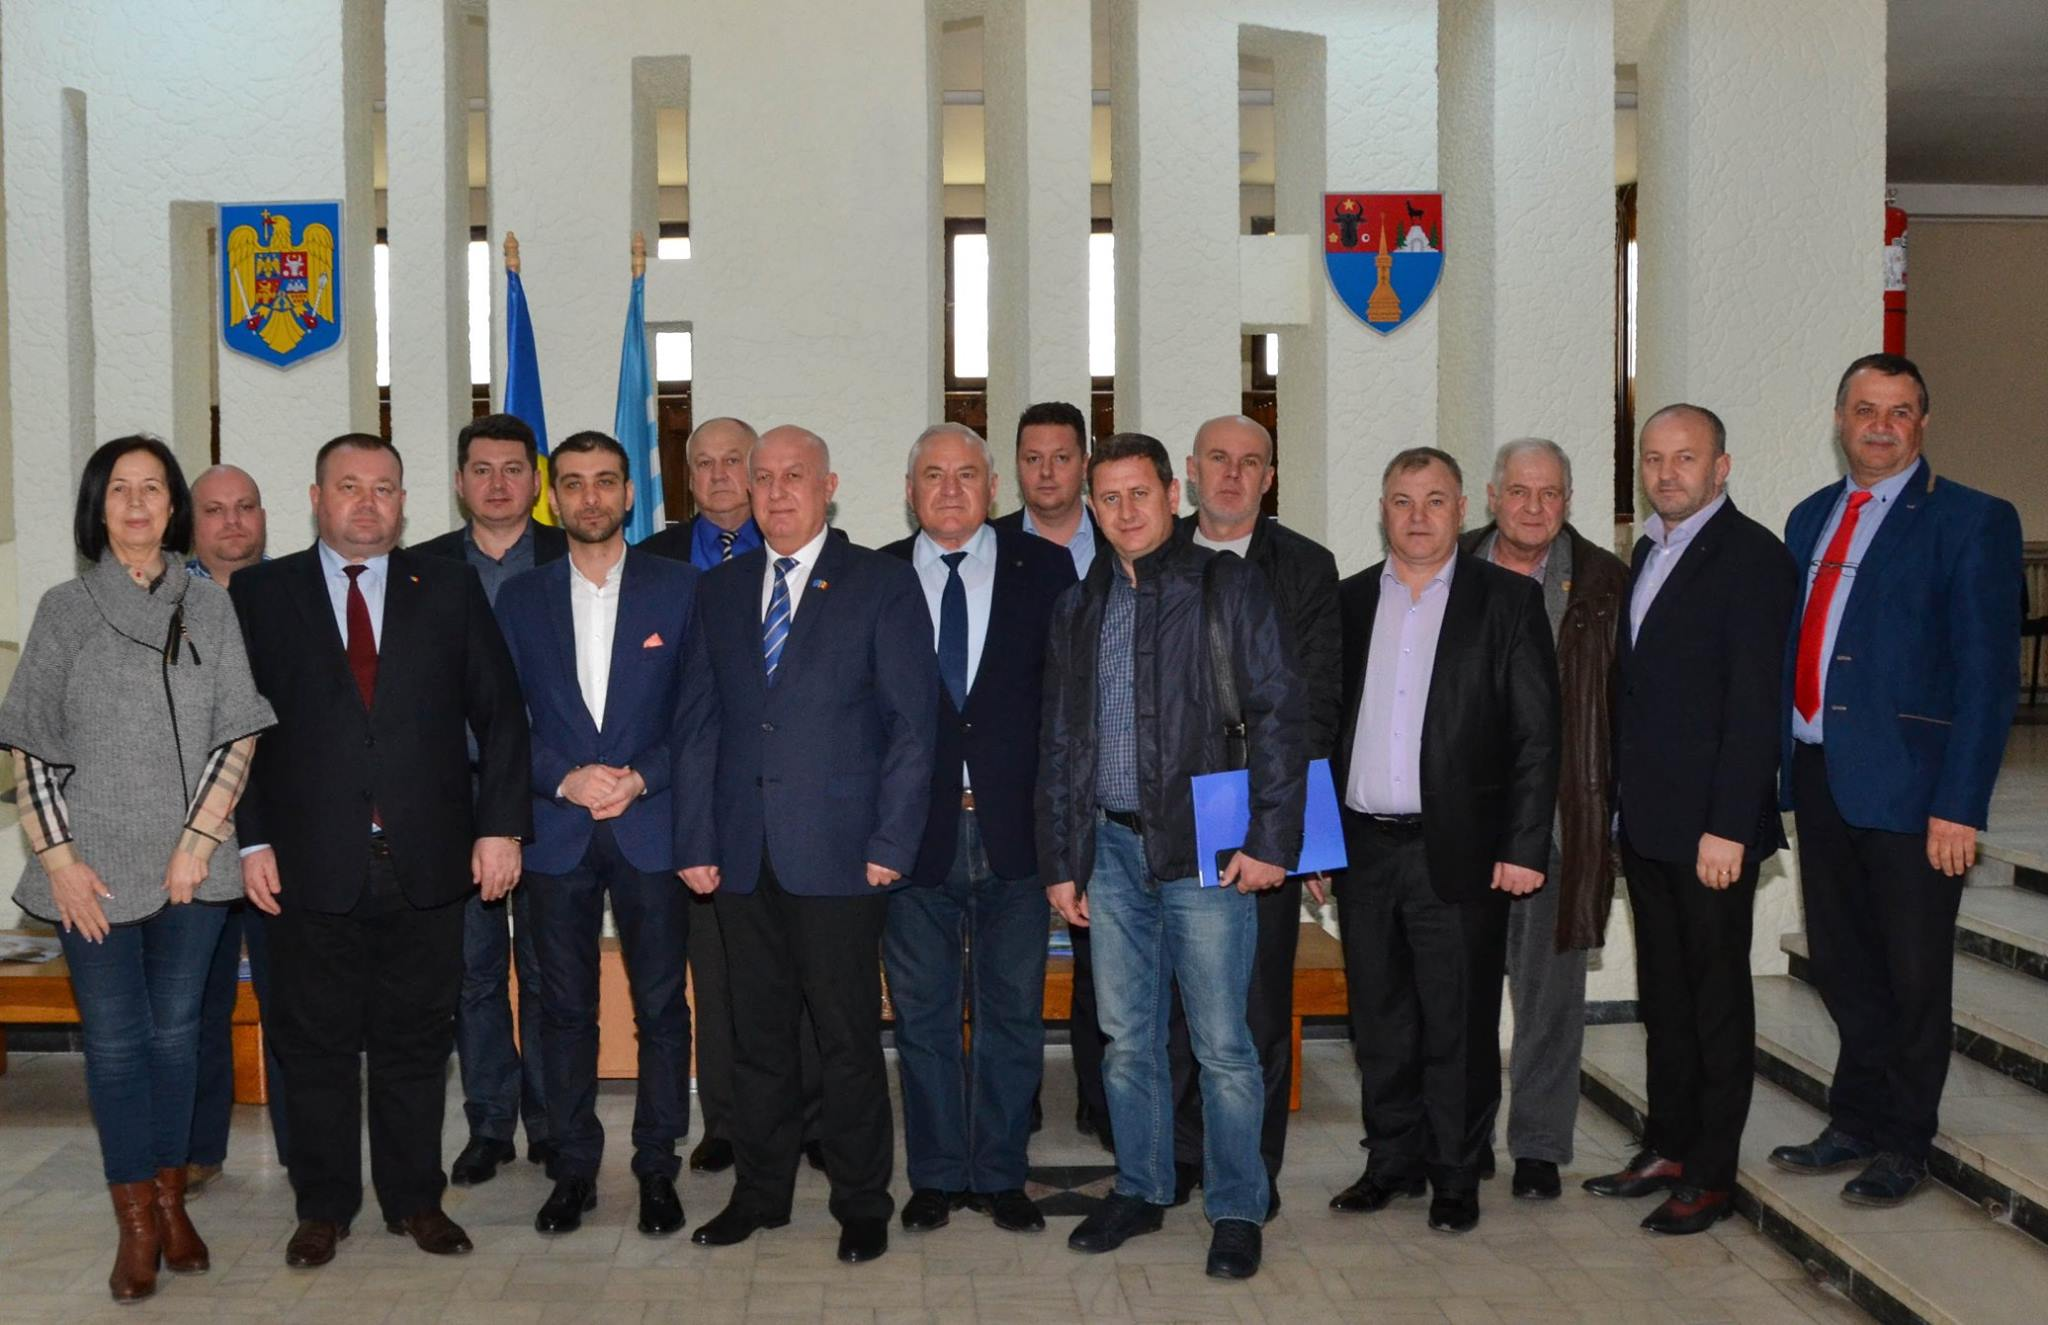 "<a class=""amazingslider-posttitle-link"" href=""http://www.euroregiune.org/en/official-reception-maramures-county-council/"" target=""_self"">Official reception at the Maramures County Council</a>"